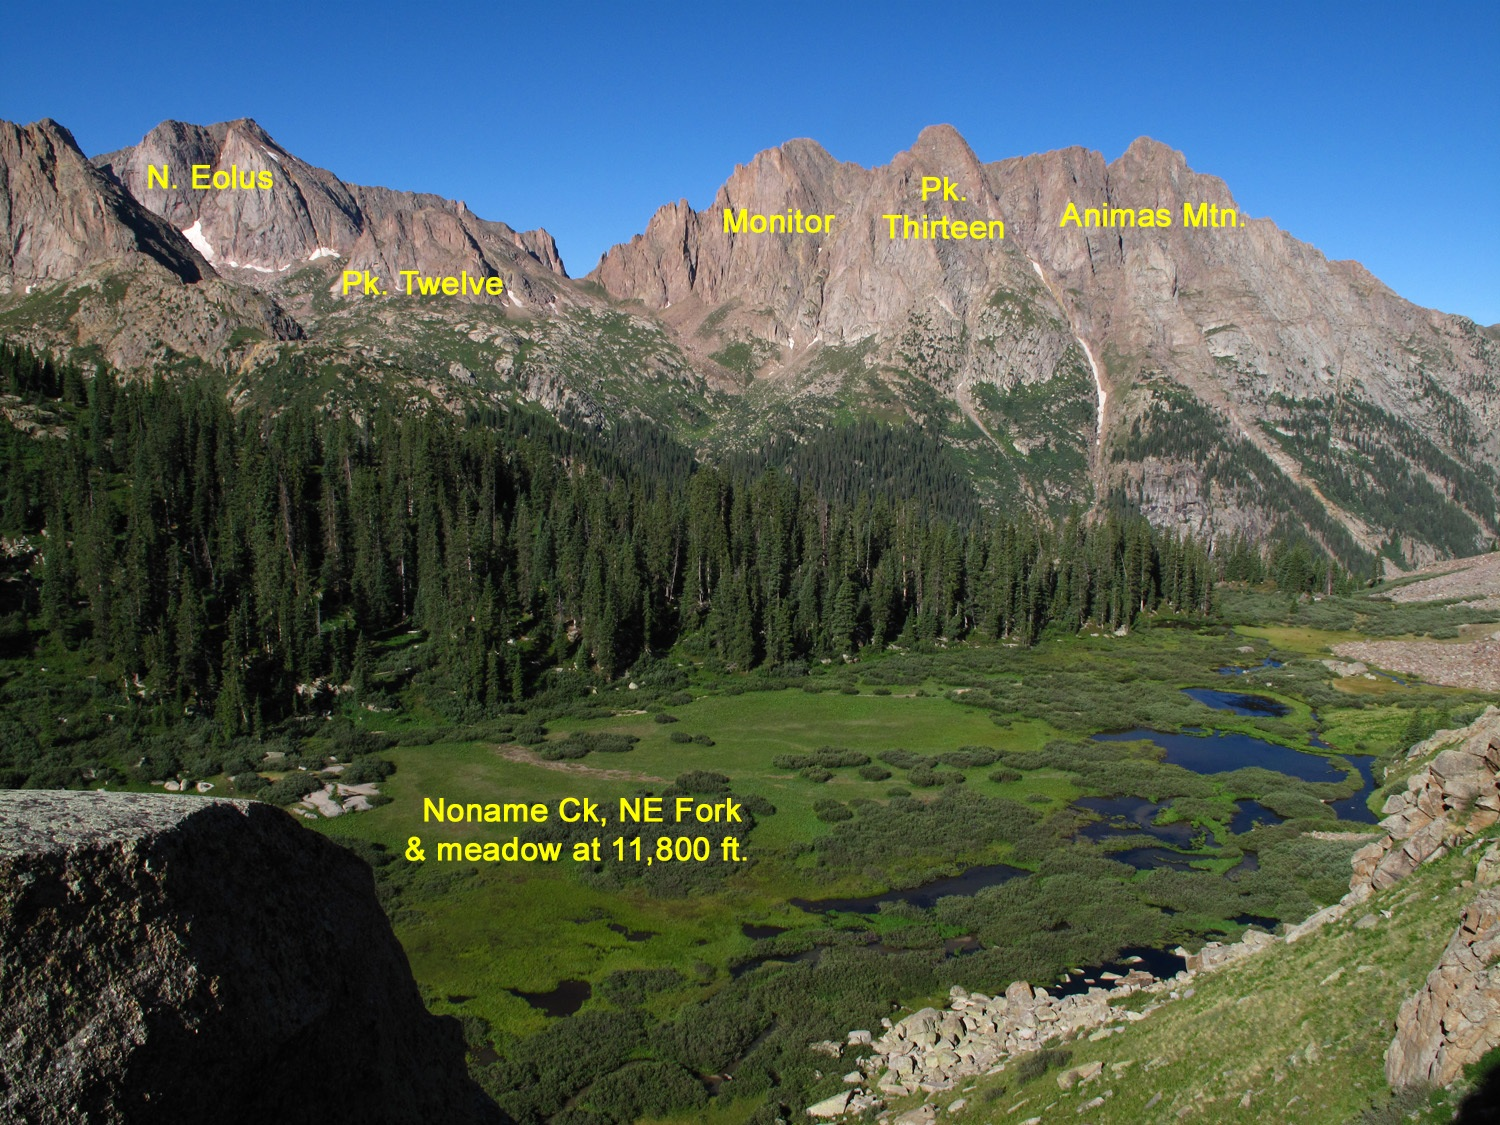 South Fork of Noname Ck.